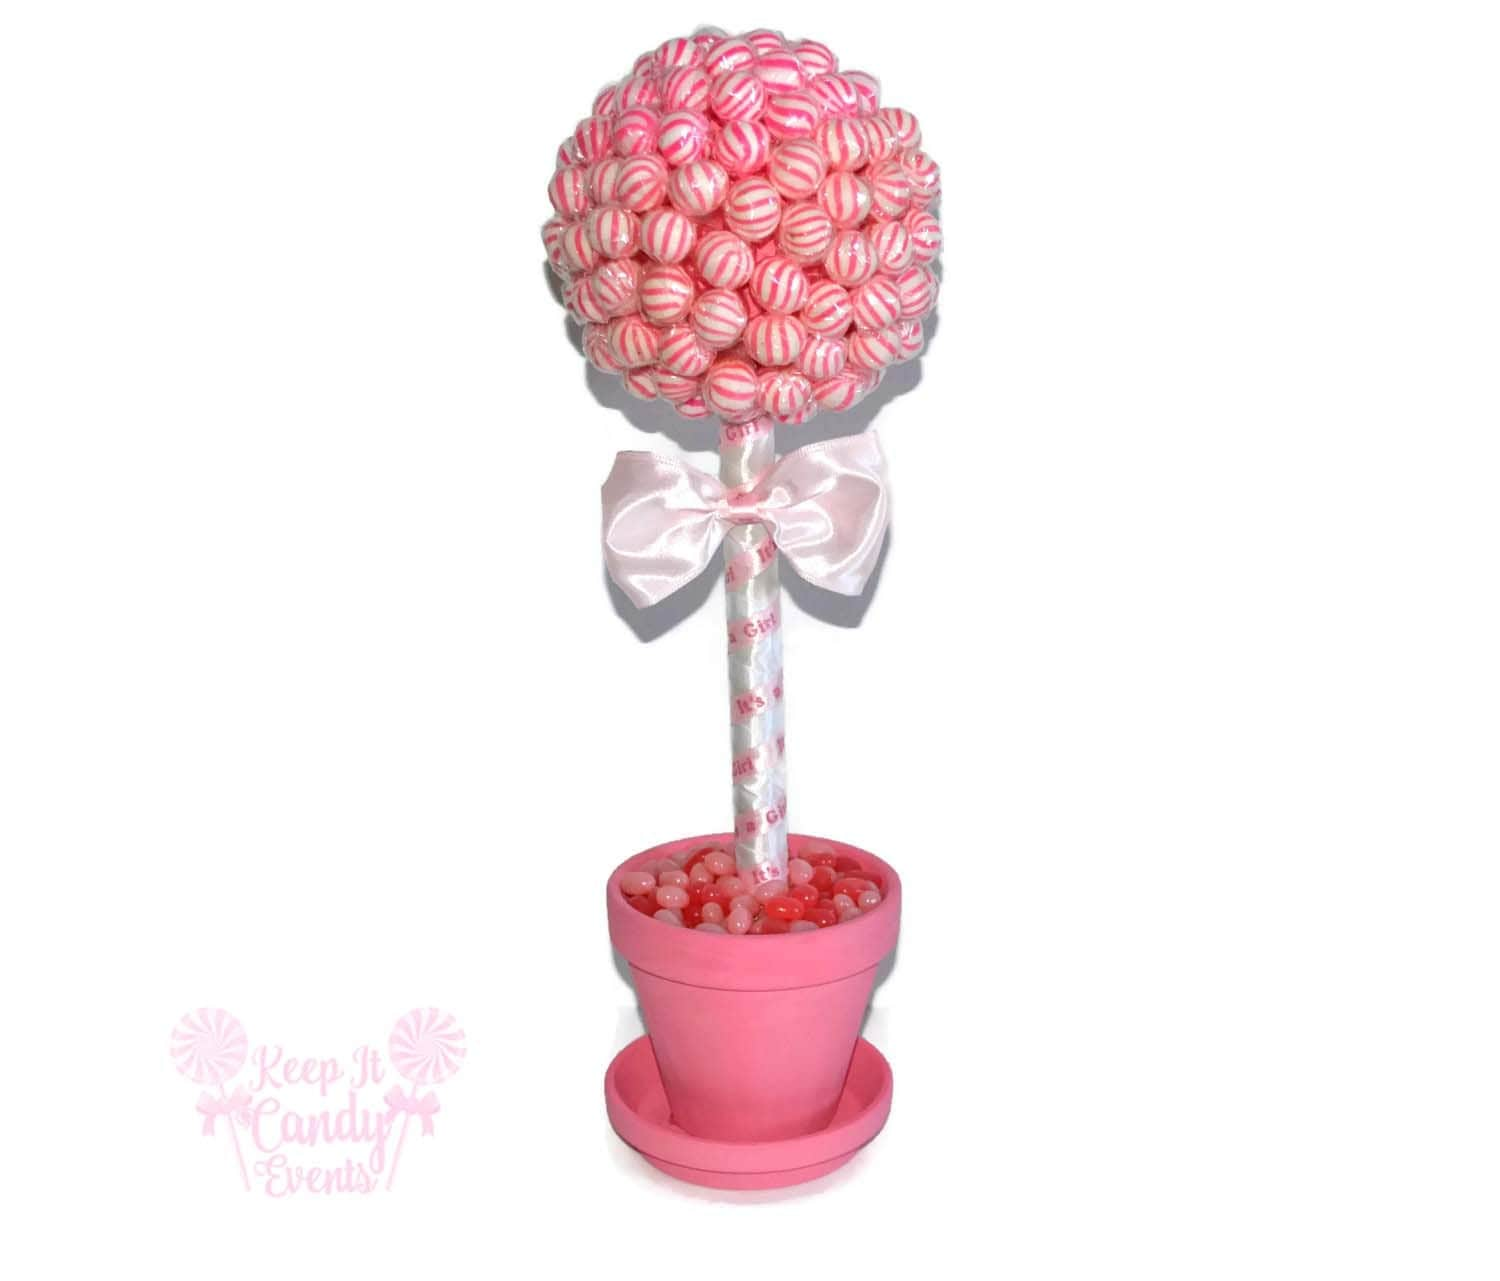 Pink lollipop baby shower topiary its a girl centerpiece